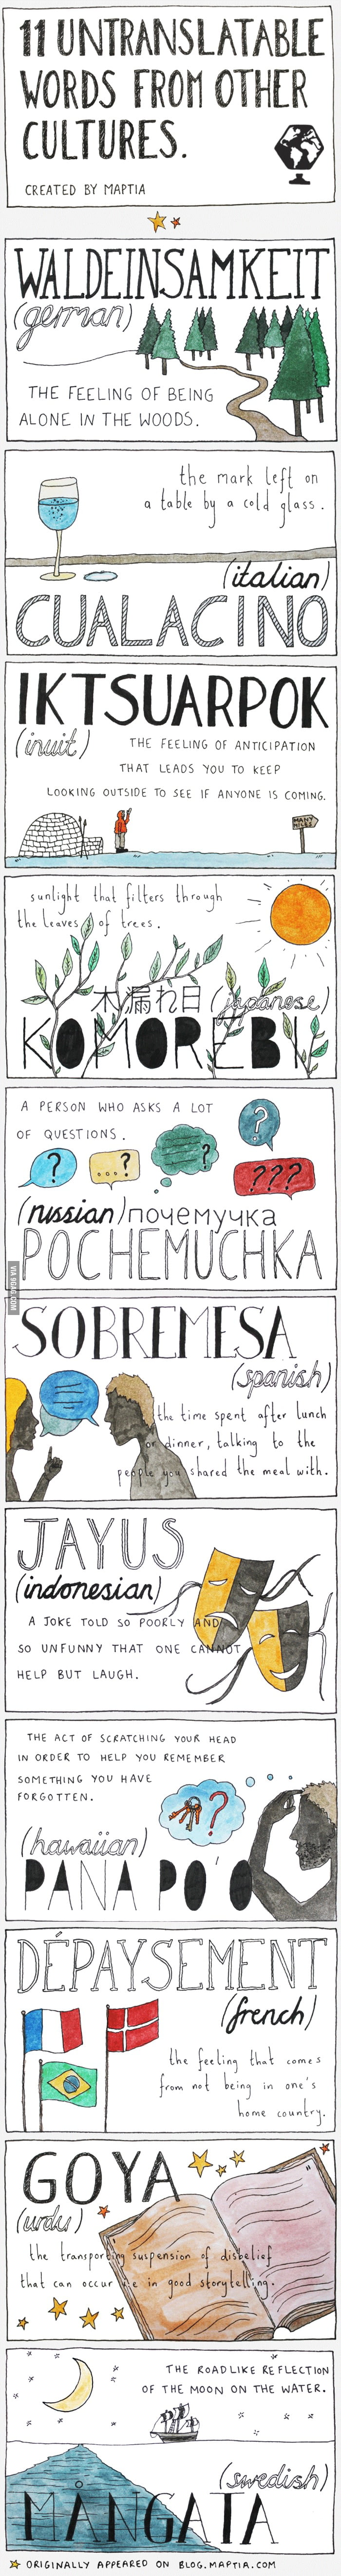 Untranslatable Words, shows a lot about different cultures